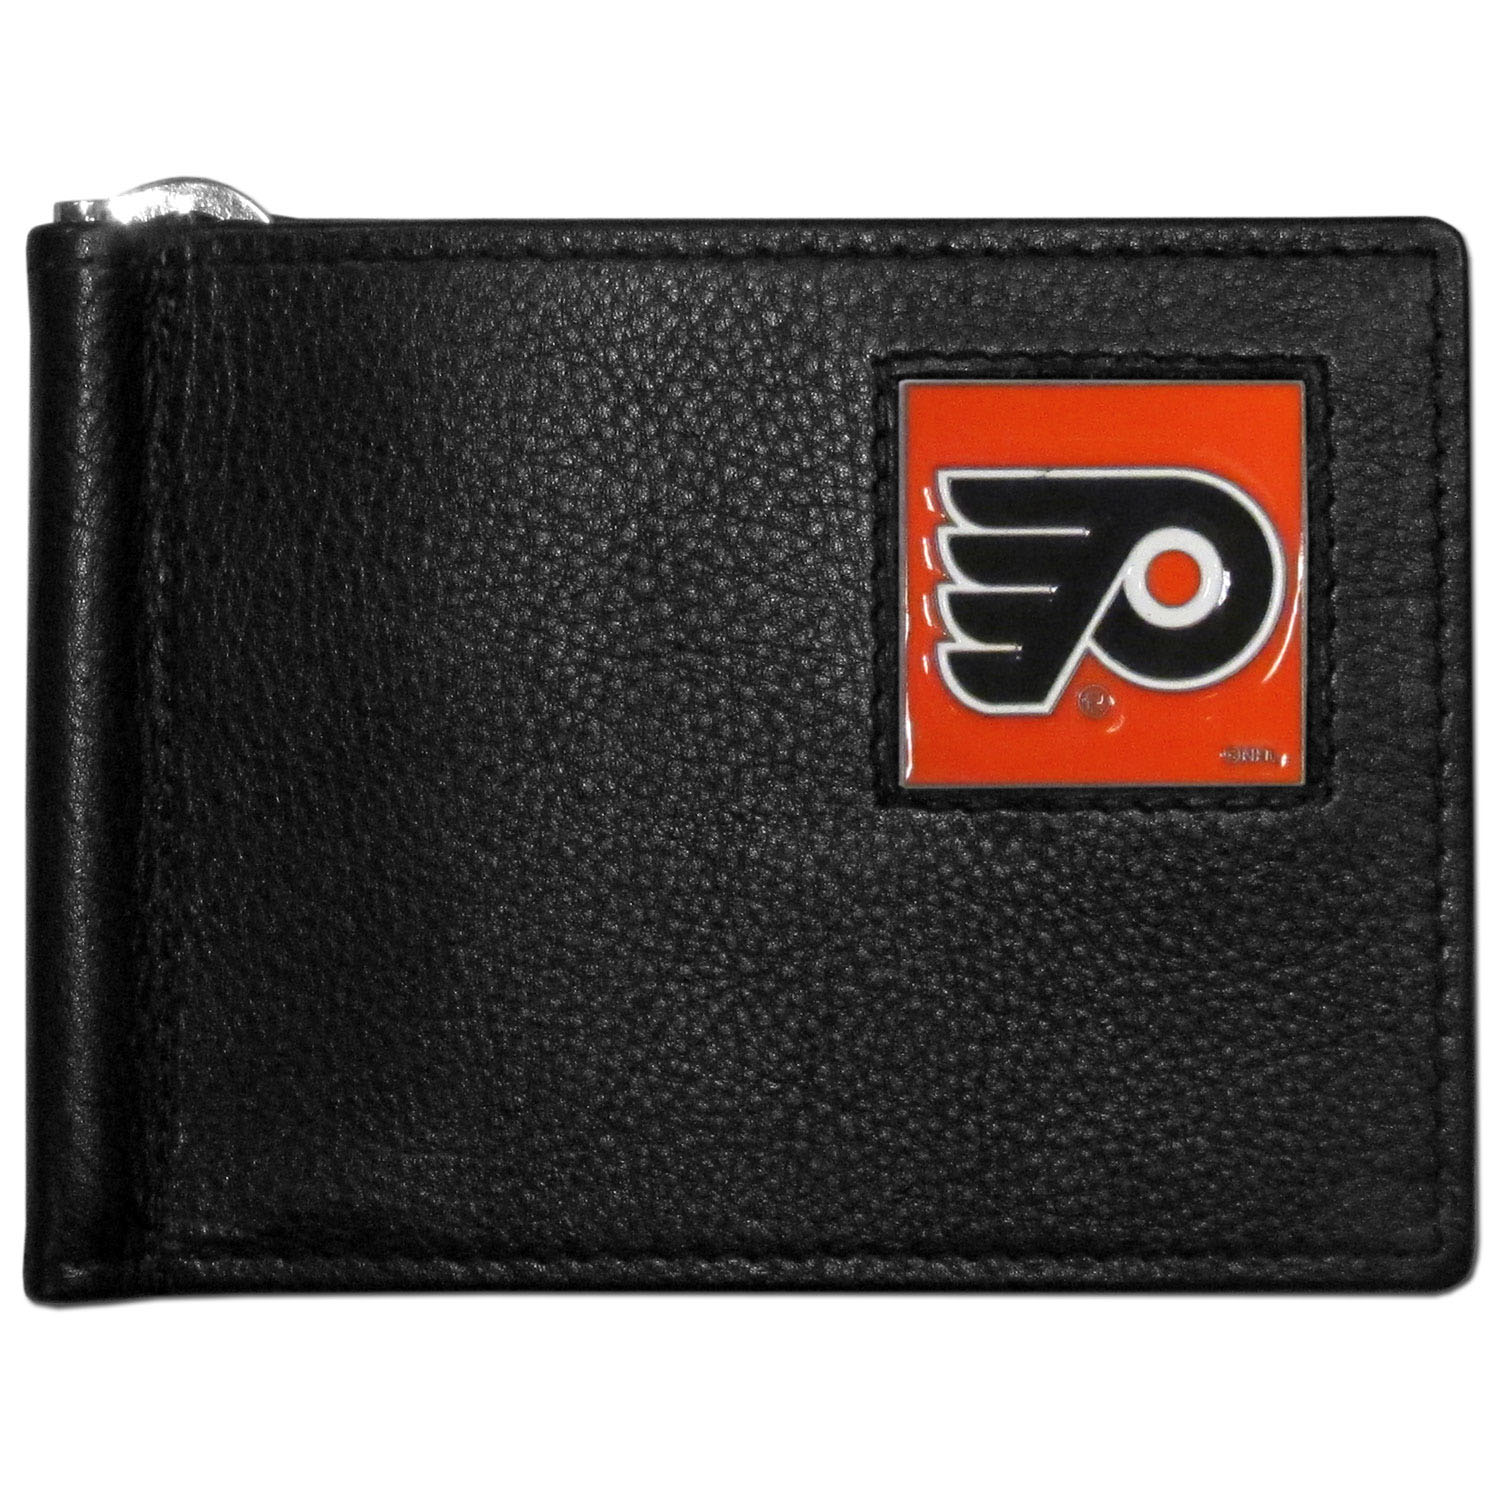 Philadelphia Flyers® Leather Bill Clip Wallet - This cool new style wallet features an inner, metal bill clip that lips up for easy access. The super slim wallet holds tons of stuff with ample pockets, credit card slots & windowed ID slot. The wallet is made of genuine fine grain leather and it finished with a metal Philadelphia Flyers® emblem. The wallet is shipped in gift box packaging.